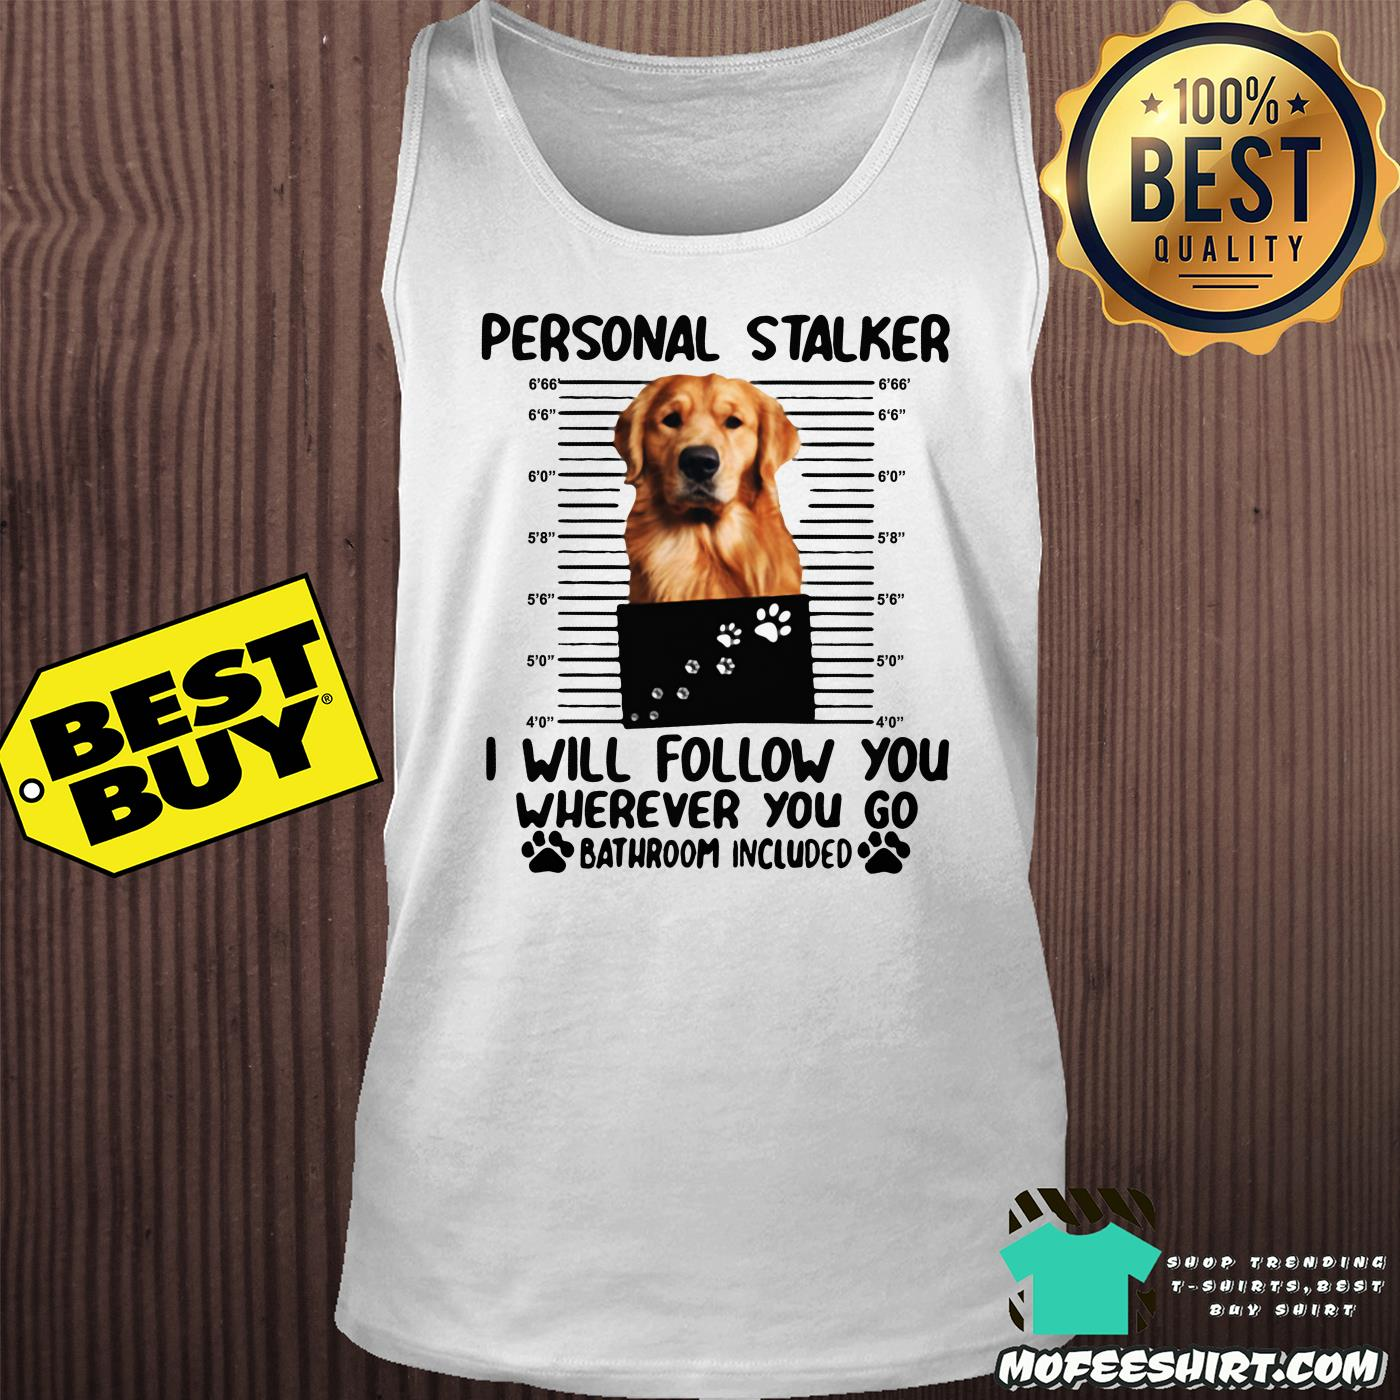 golden personal stalker i will follow you wherever you go bathroom included tank top - Golden Personal Stalker I Will Follow You Wherever You Go Bathroom Included shirt